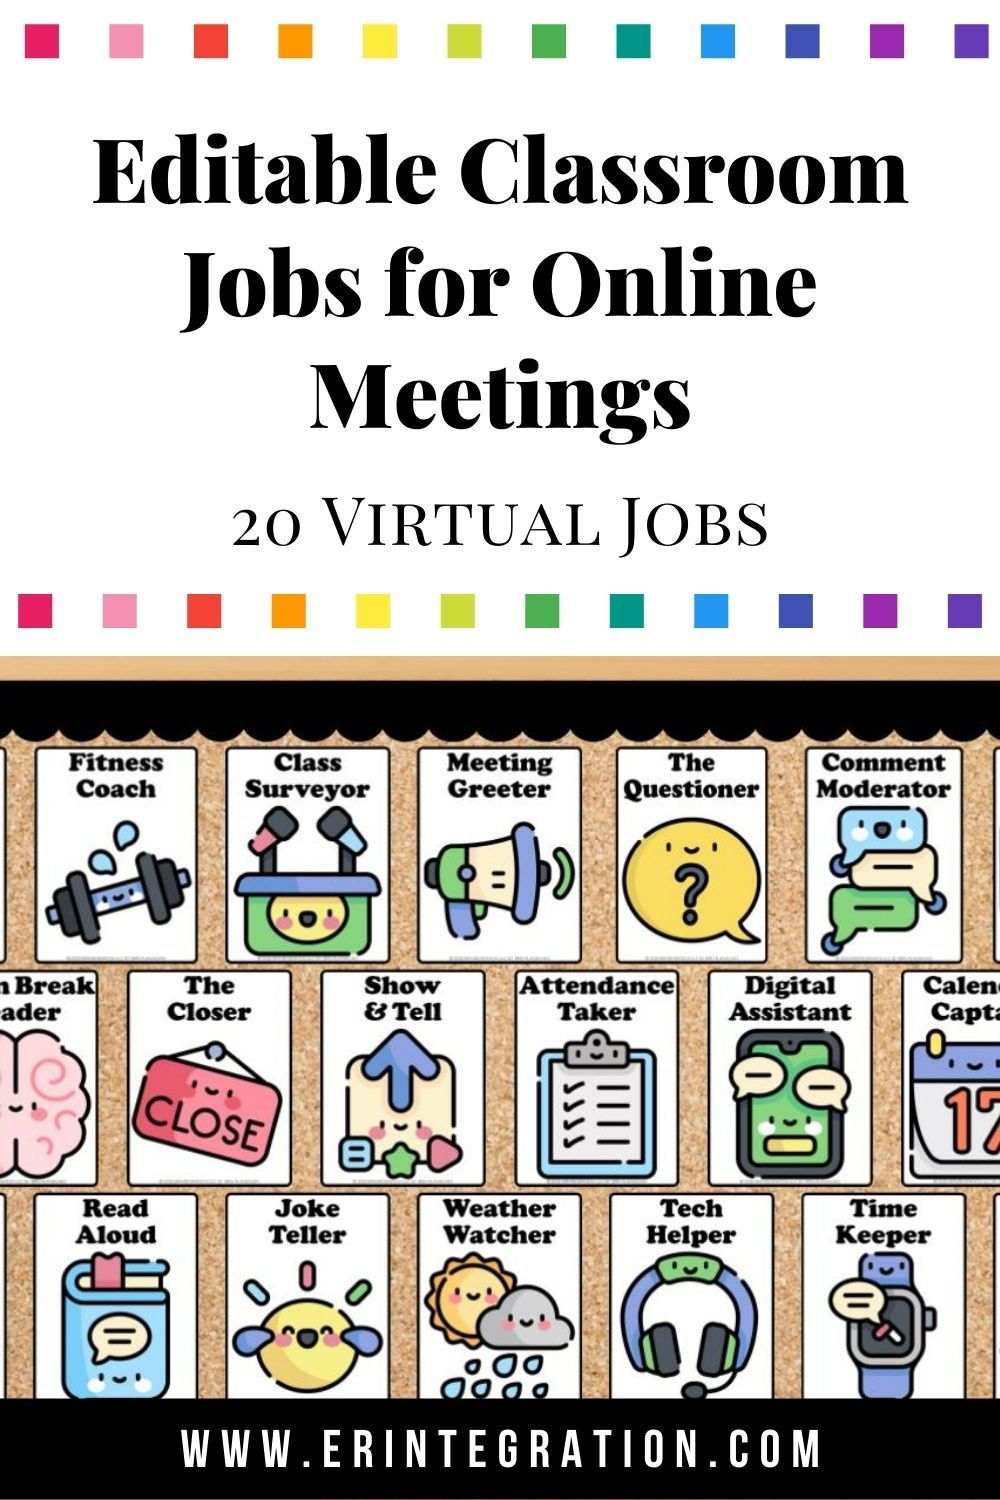 Virtual Jobs For Online Classrooms Digital Interactive Bulletin Board 20 Jobs In 2020 Virtual Jobs Online Classroom Interactive Bulletin Board